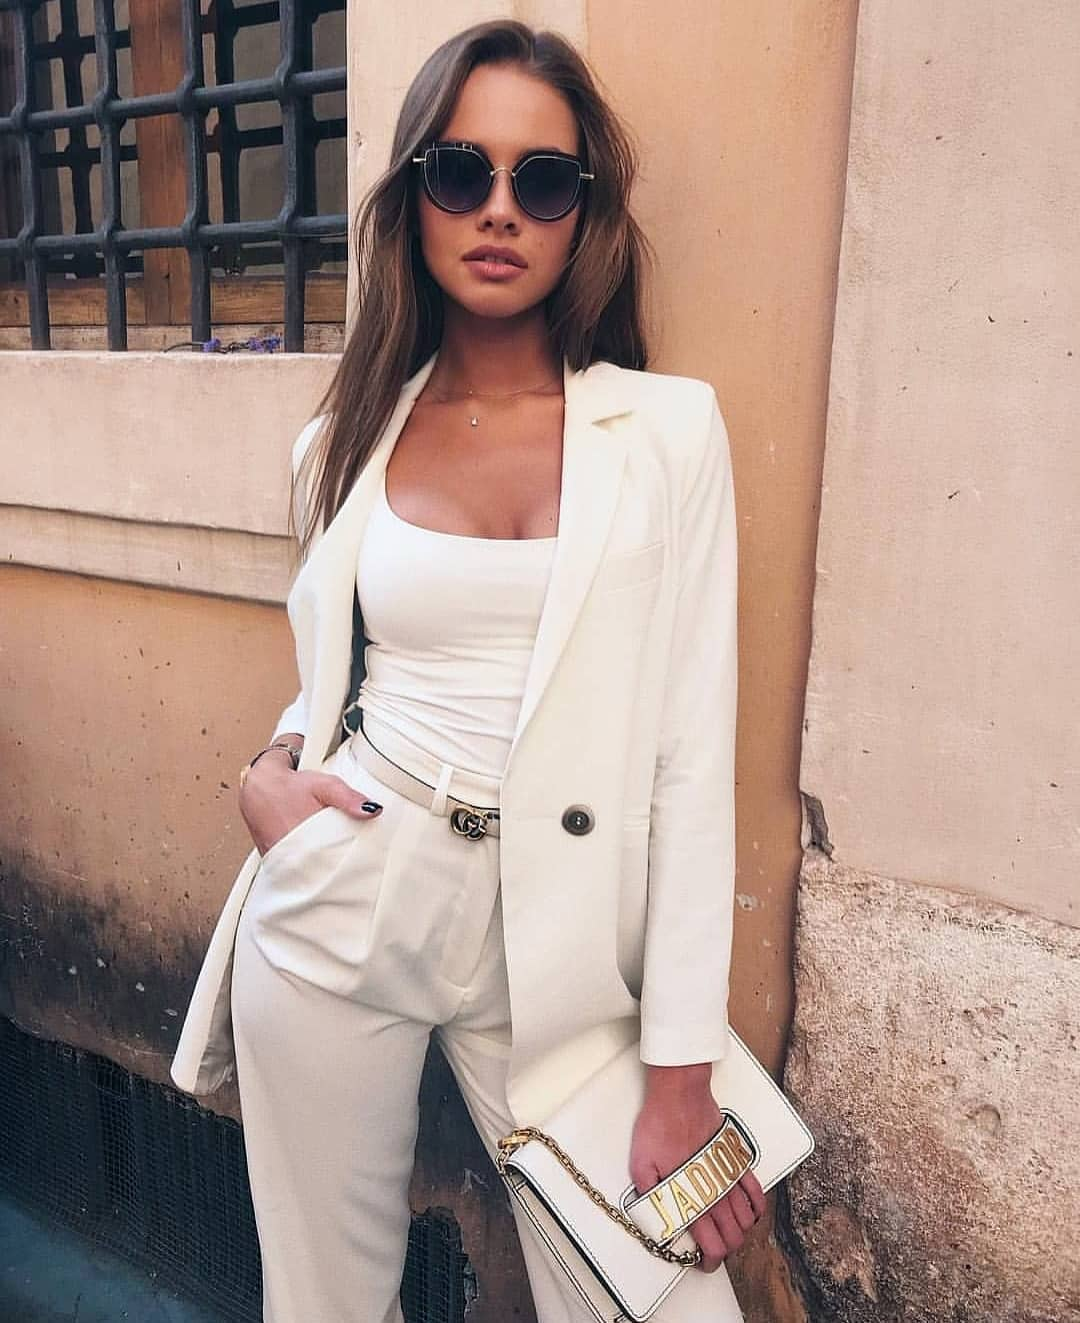 All White Pantsuit For Summer Vacation 2019